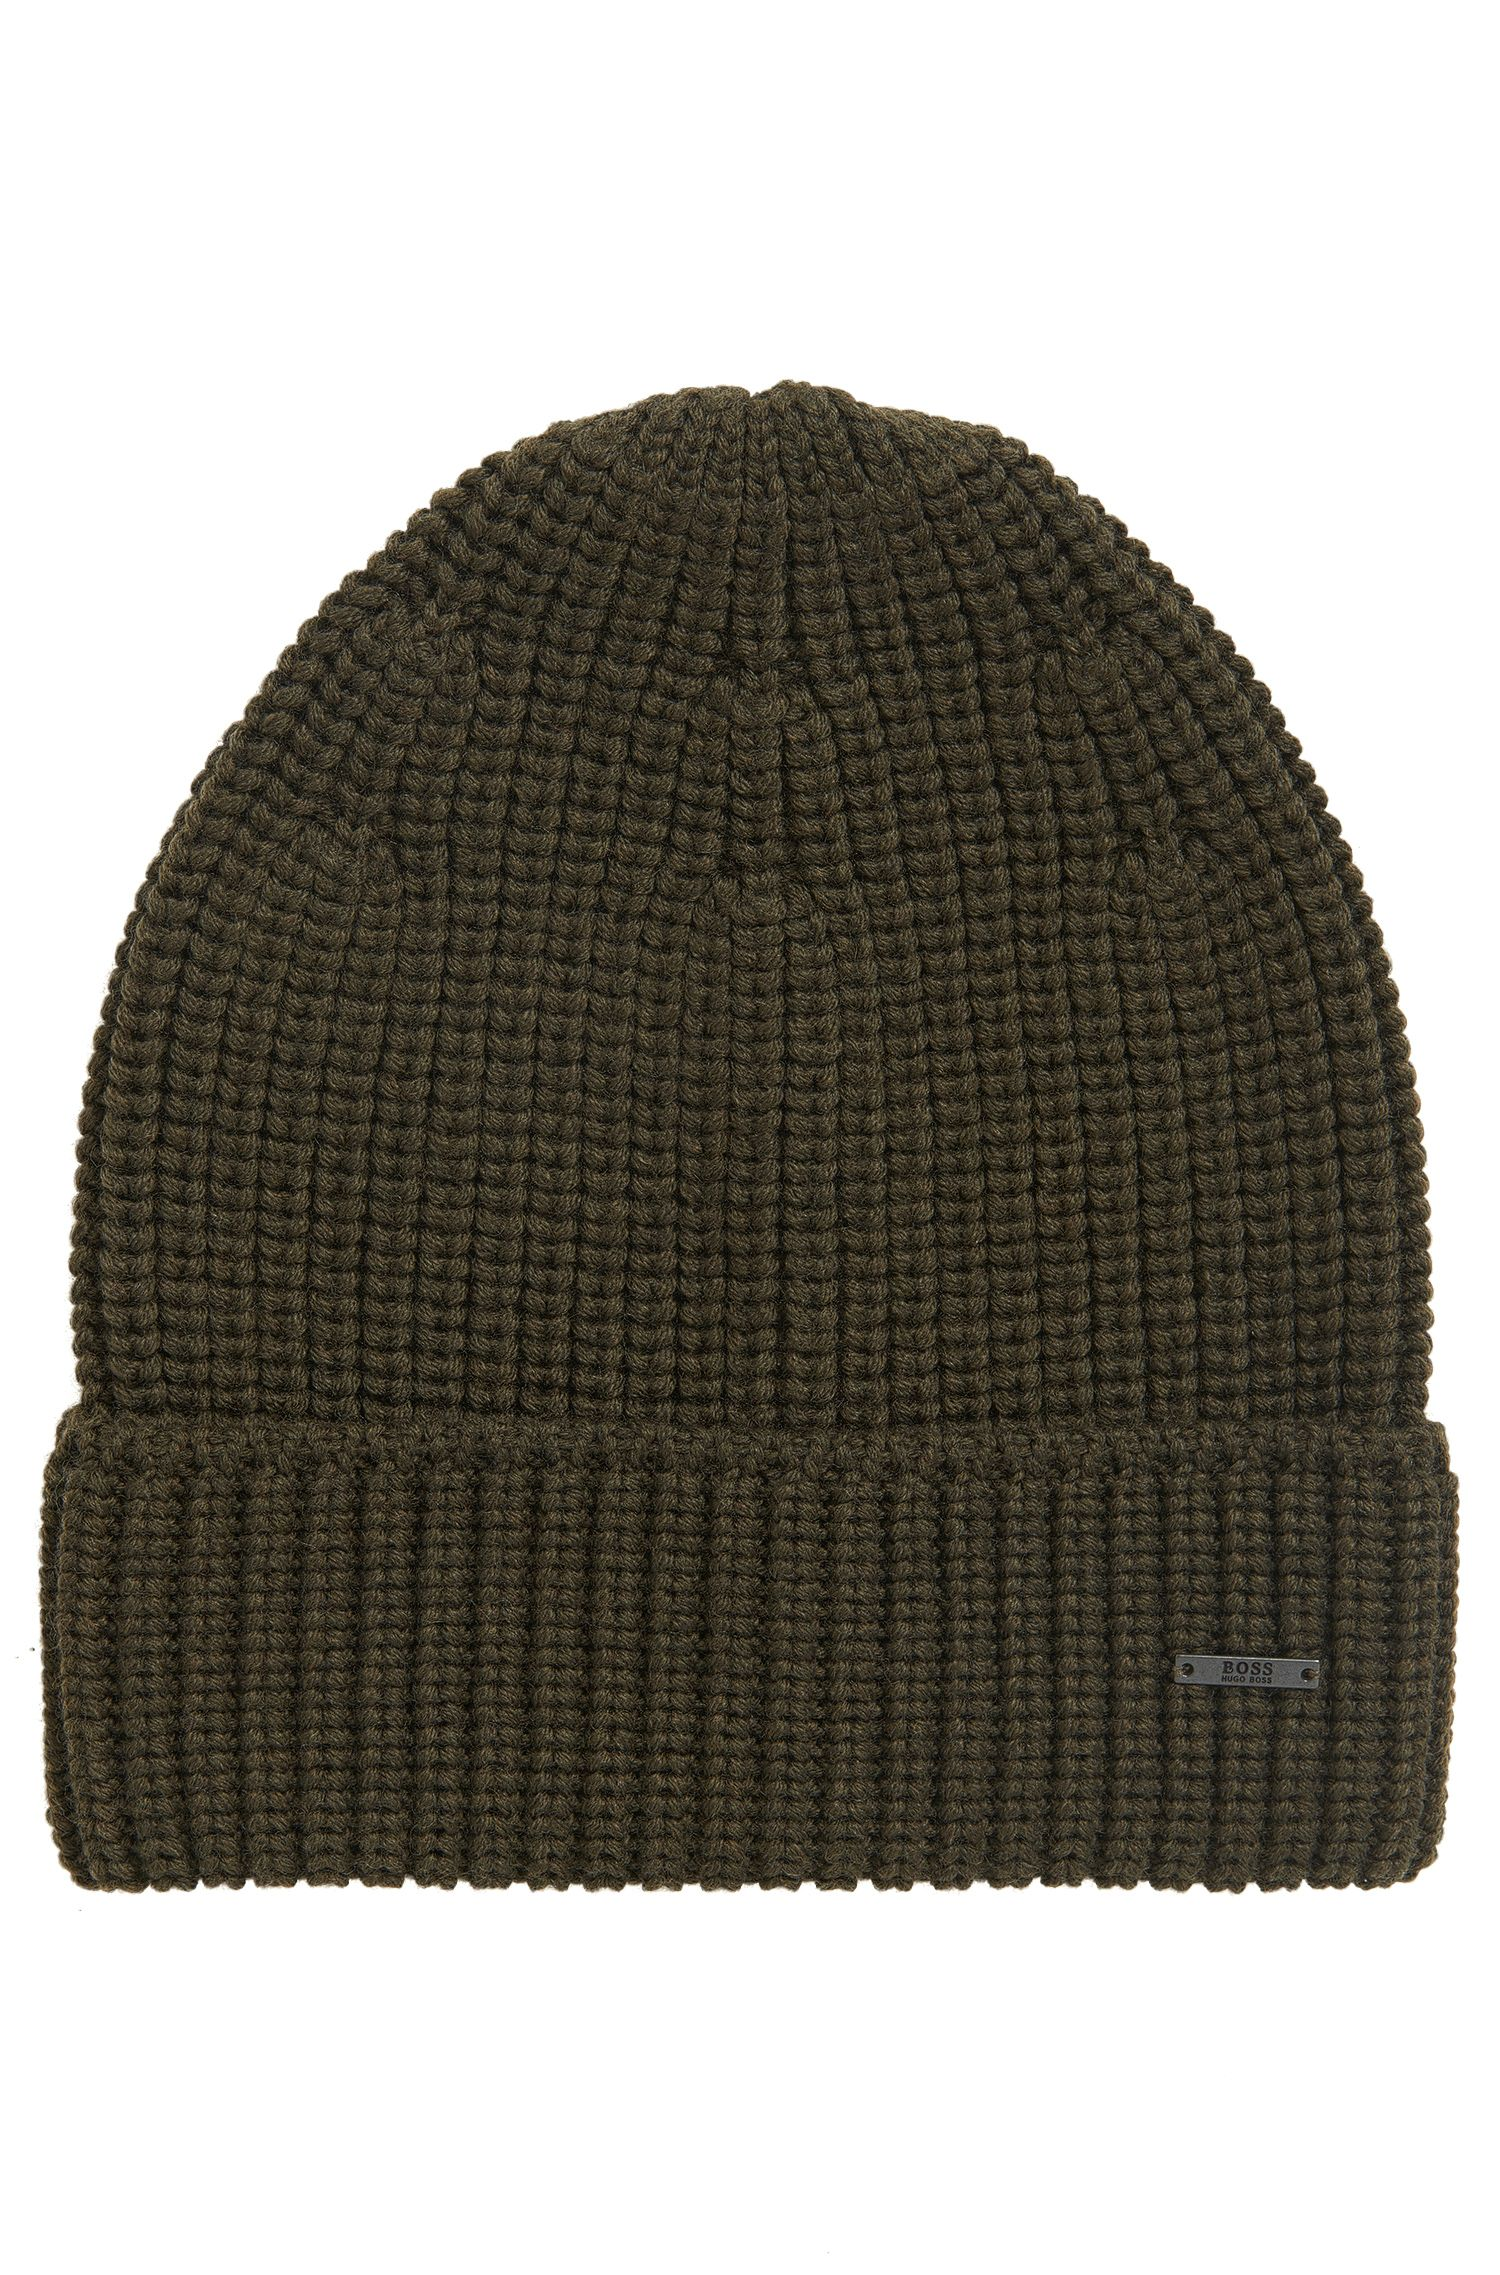 Knitted beanie hat in pure wool